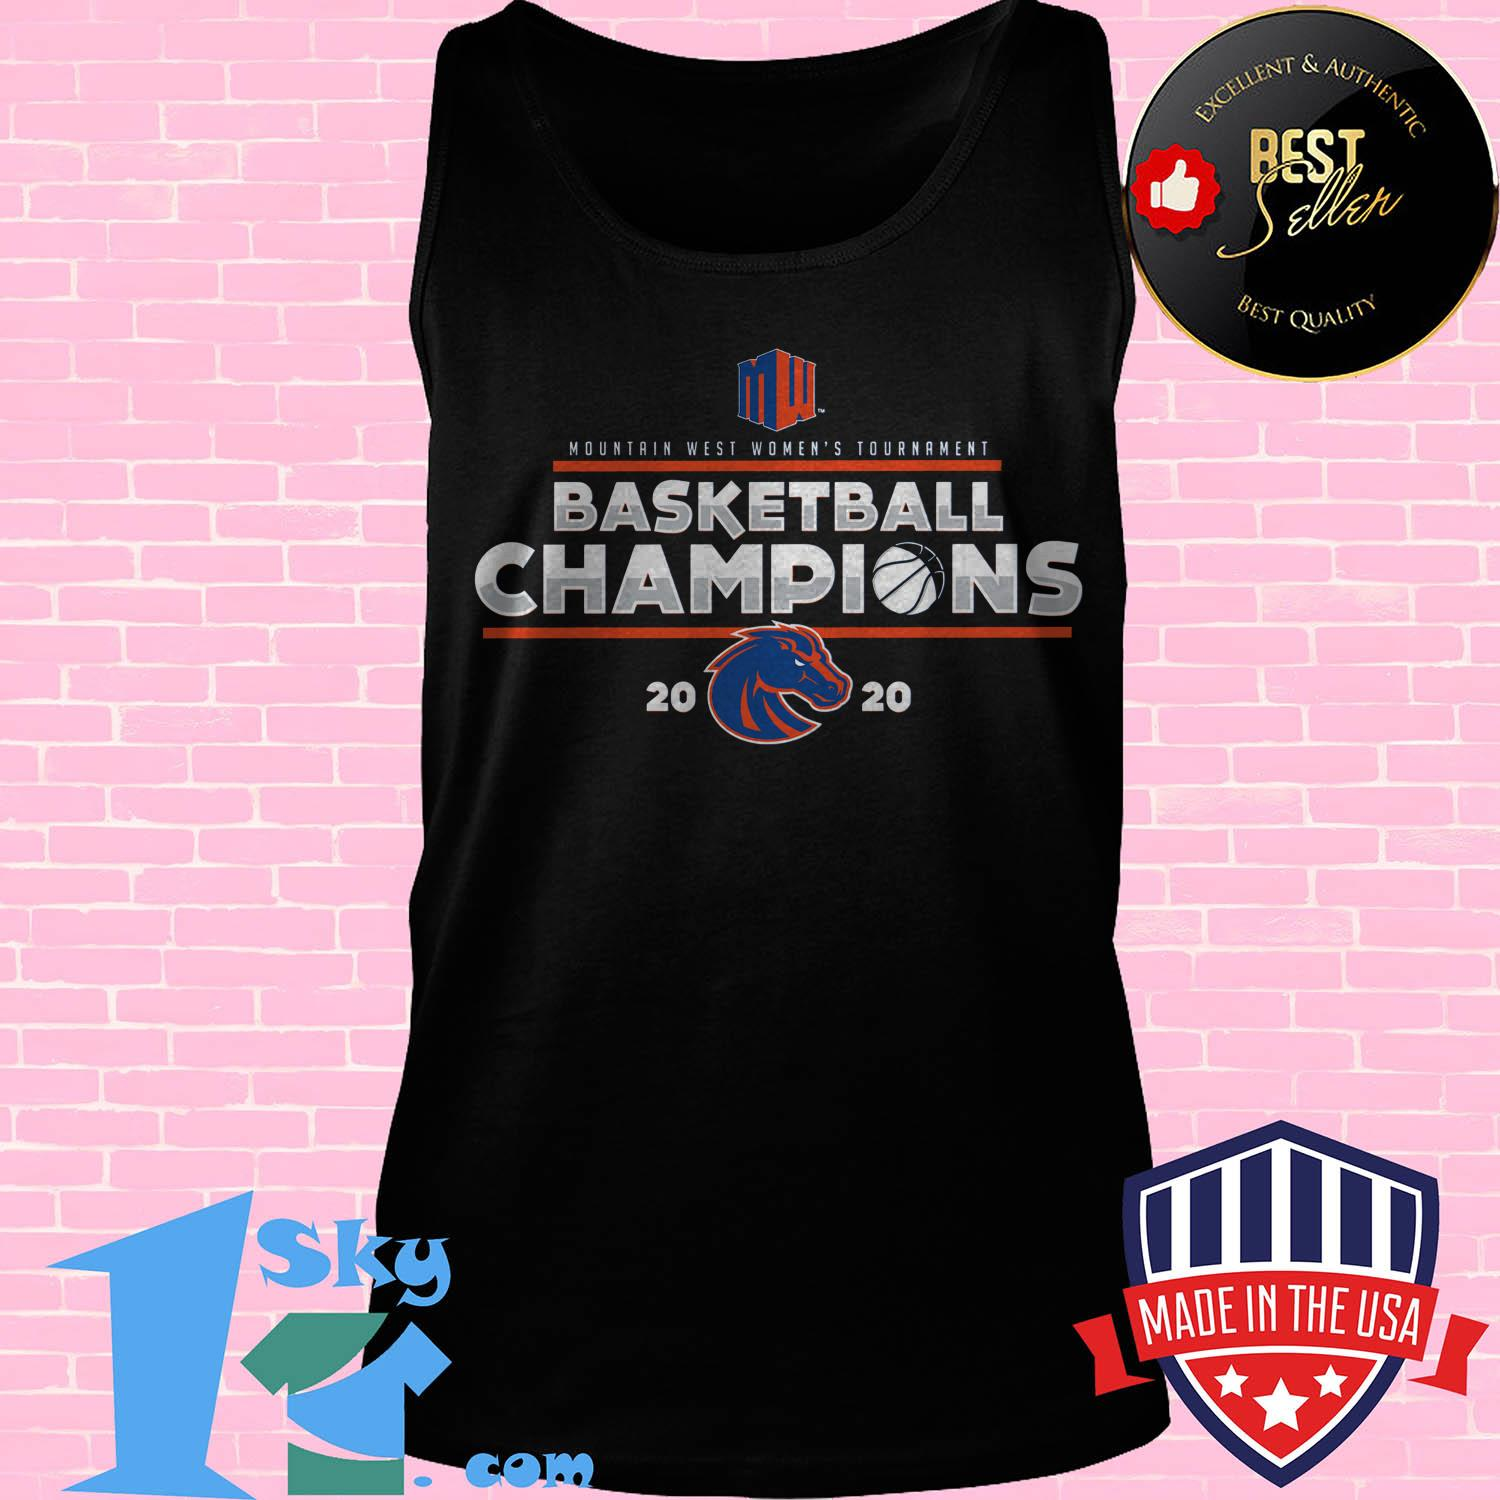 mountain west womens basketball conference tournament champions 2020 tank top - Mountain West Women's Basketball Conference Tournament Champions 2020 Shirt